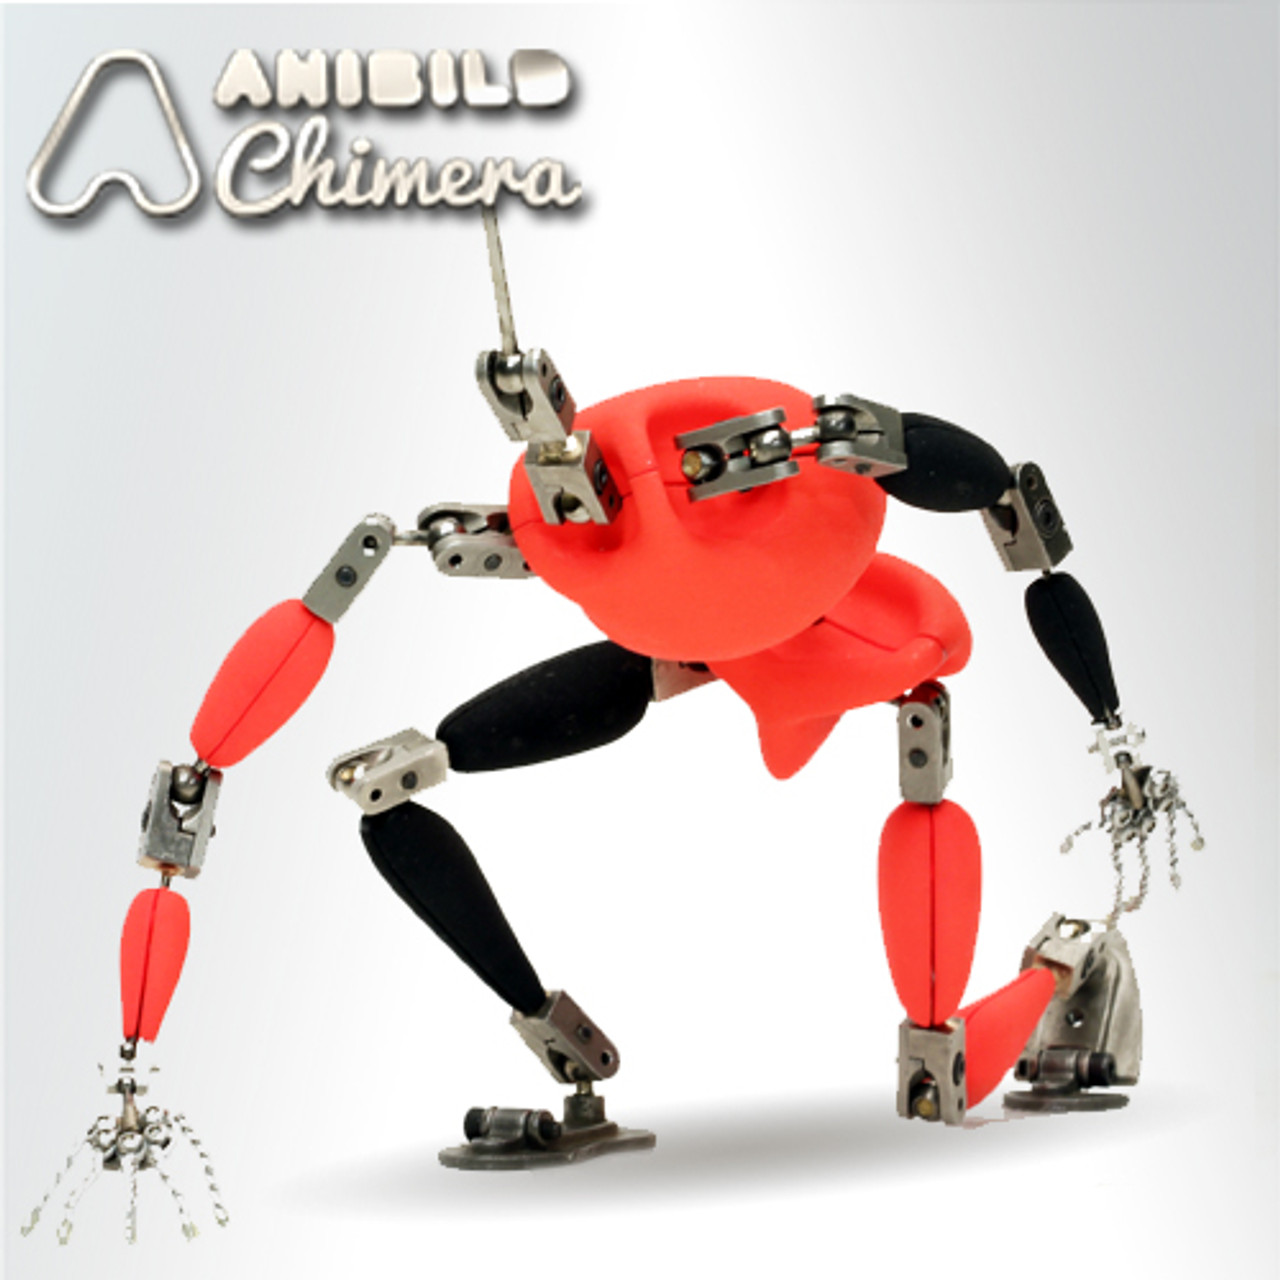 Female Cinematic Armature Anibild Chimera